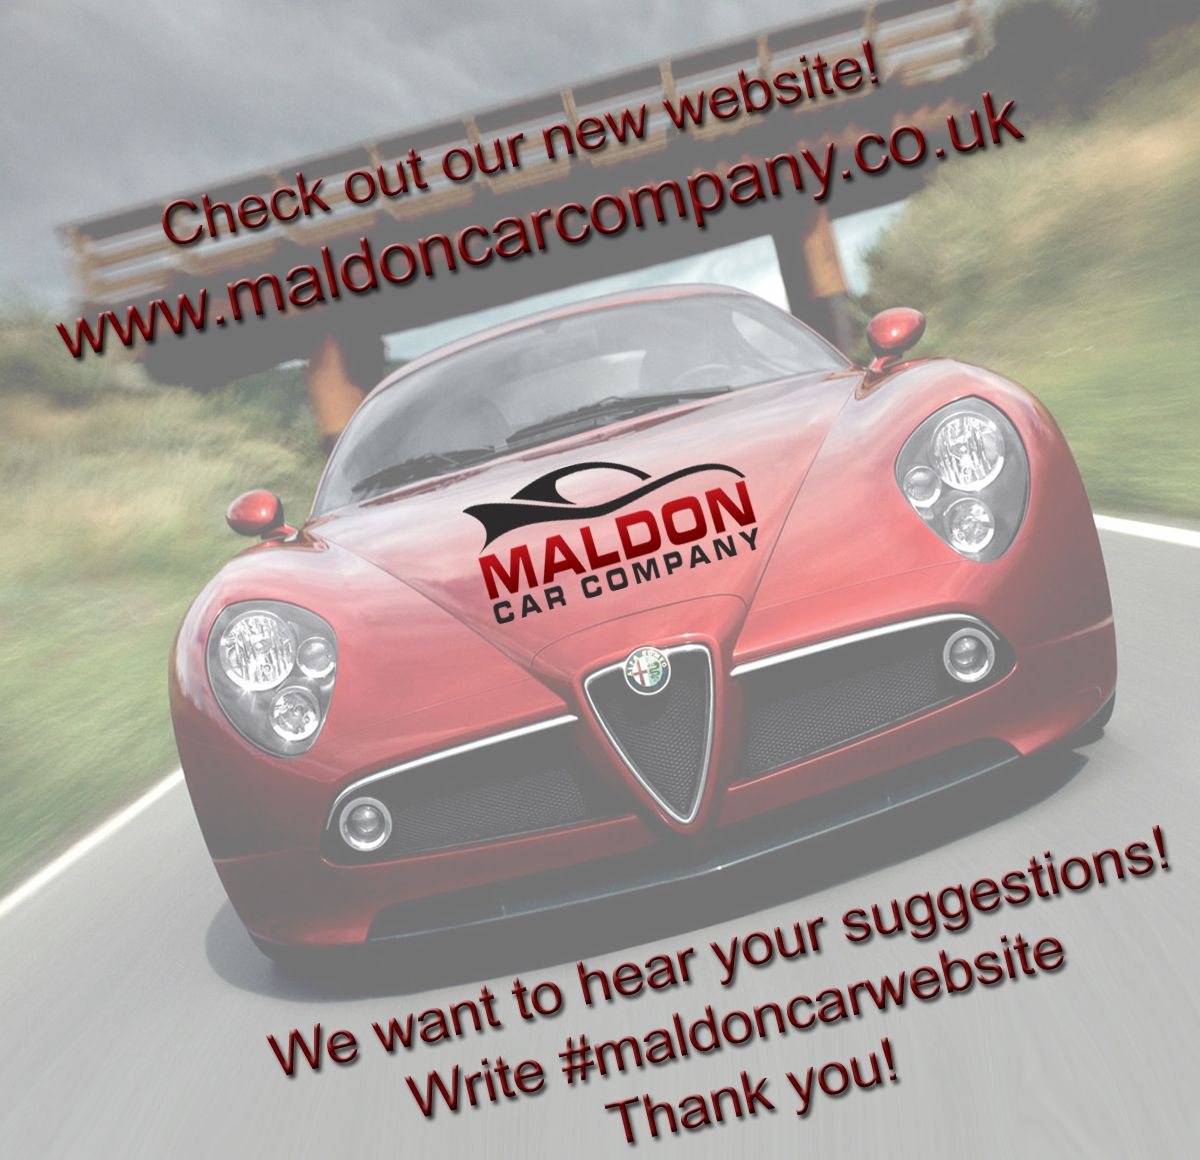 Check out our new maldon car company website http